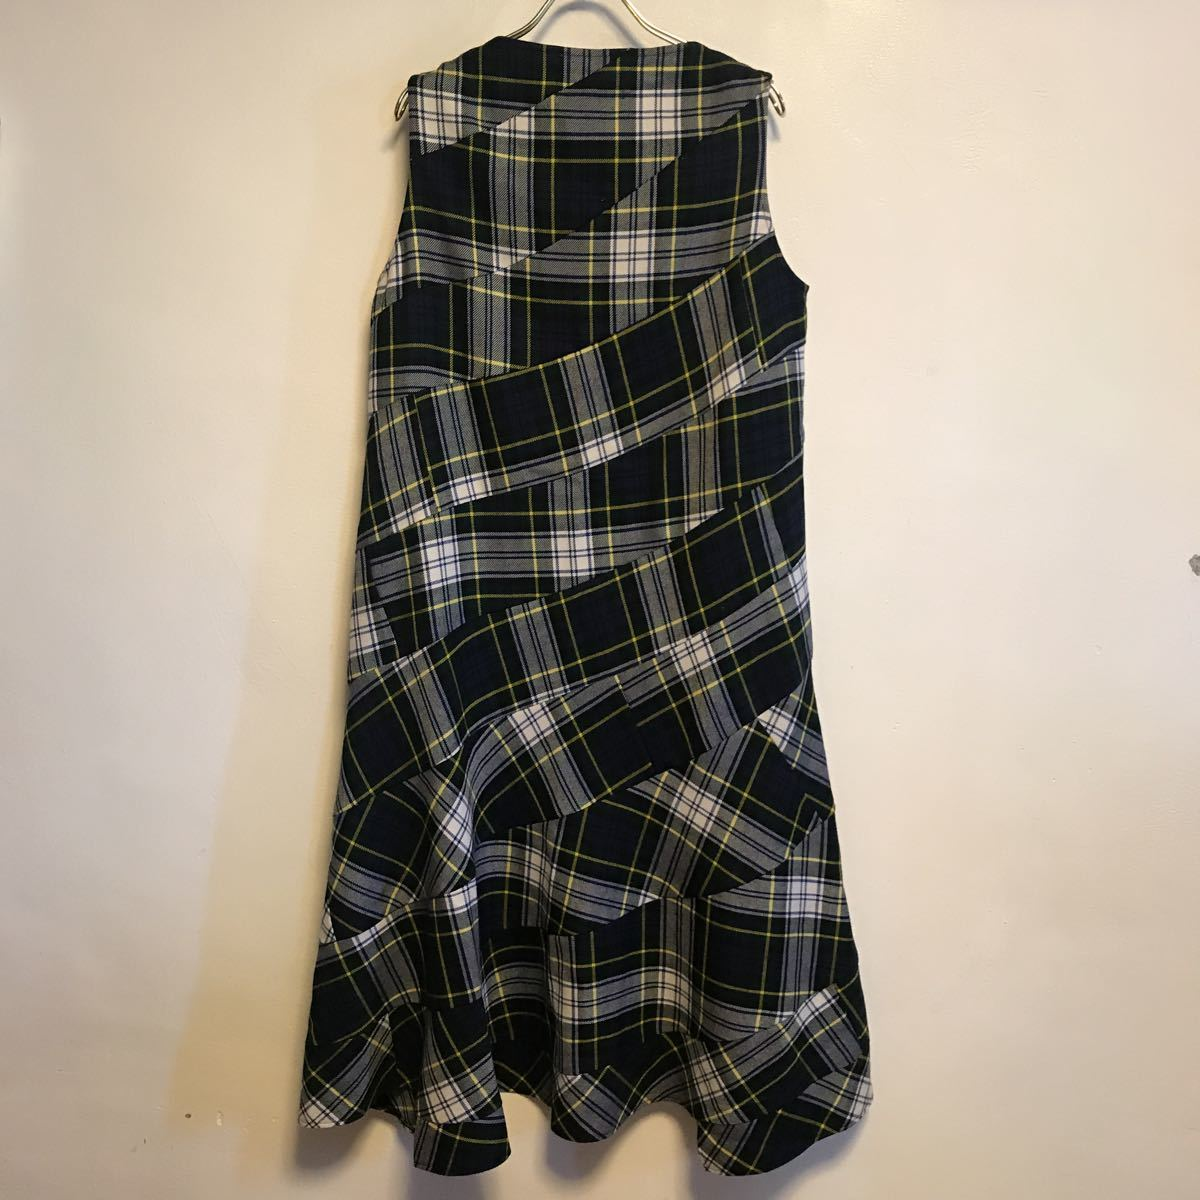 tricot COMME des GARCONS タータンチェック  ワンピース_画像4